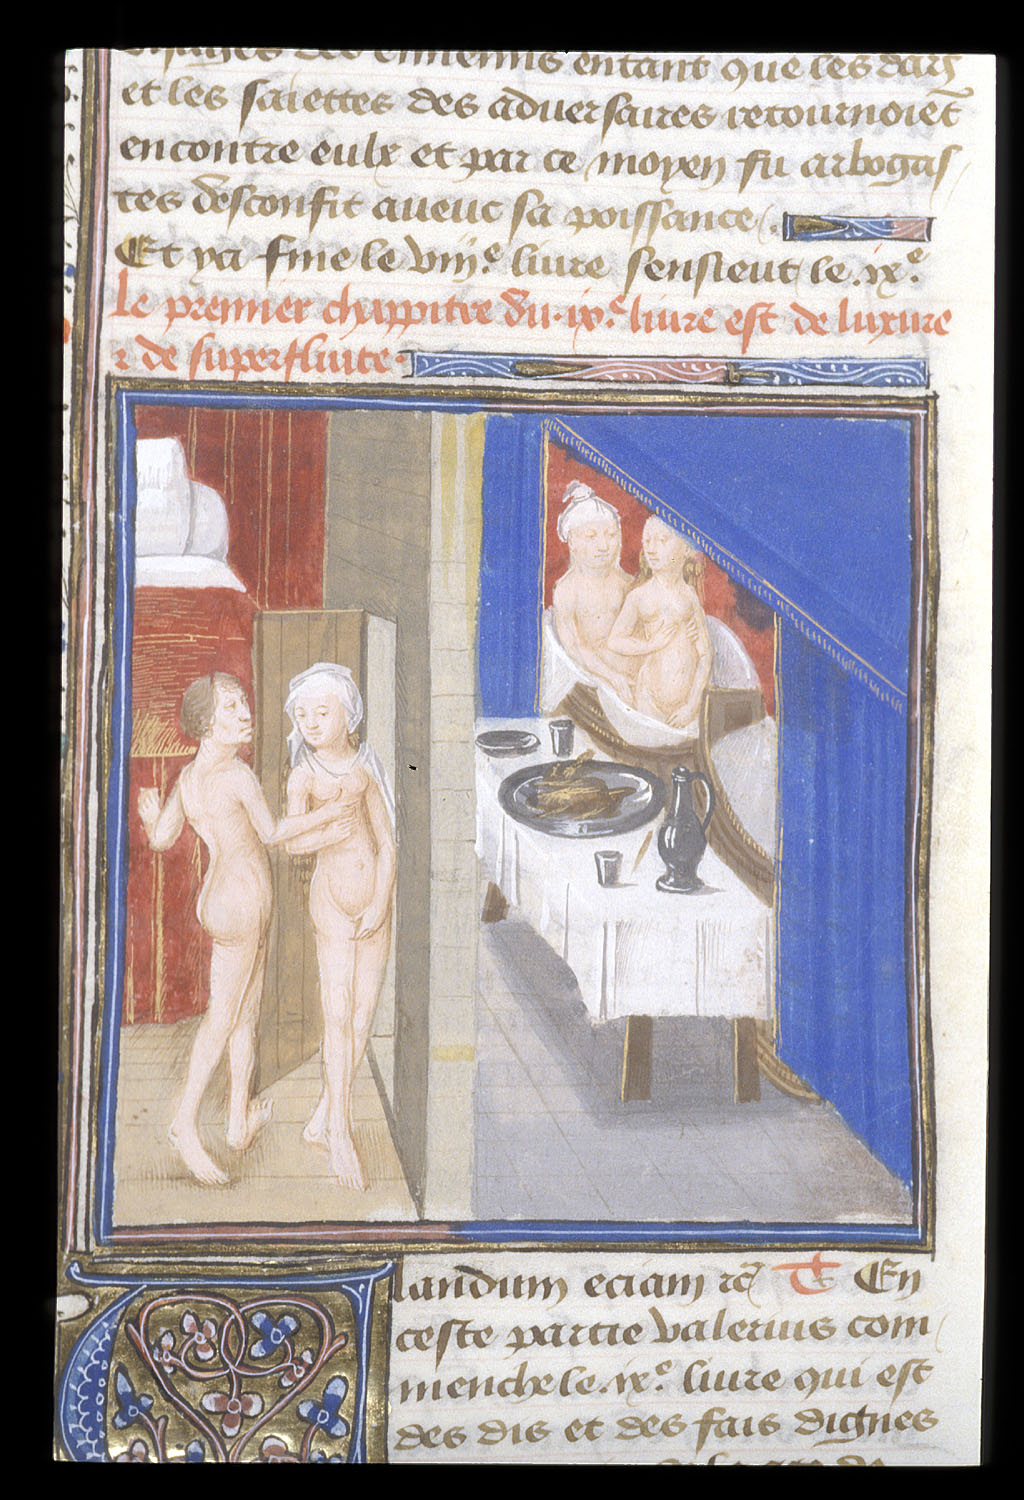 prostitution in medieval society otis leah lydia